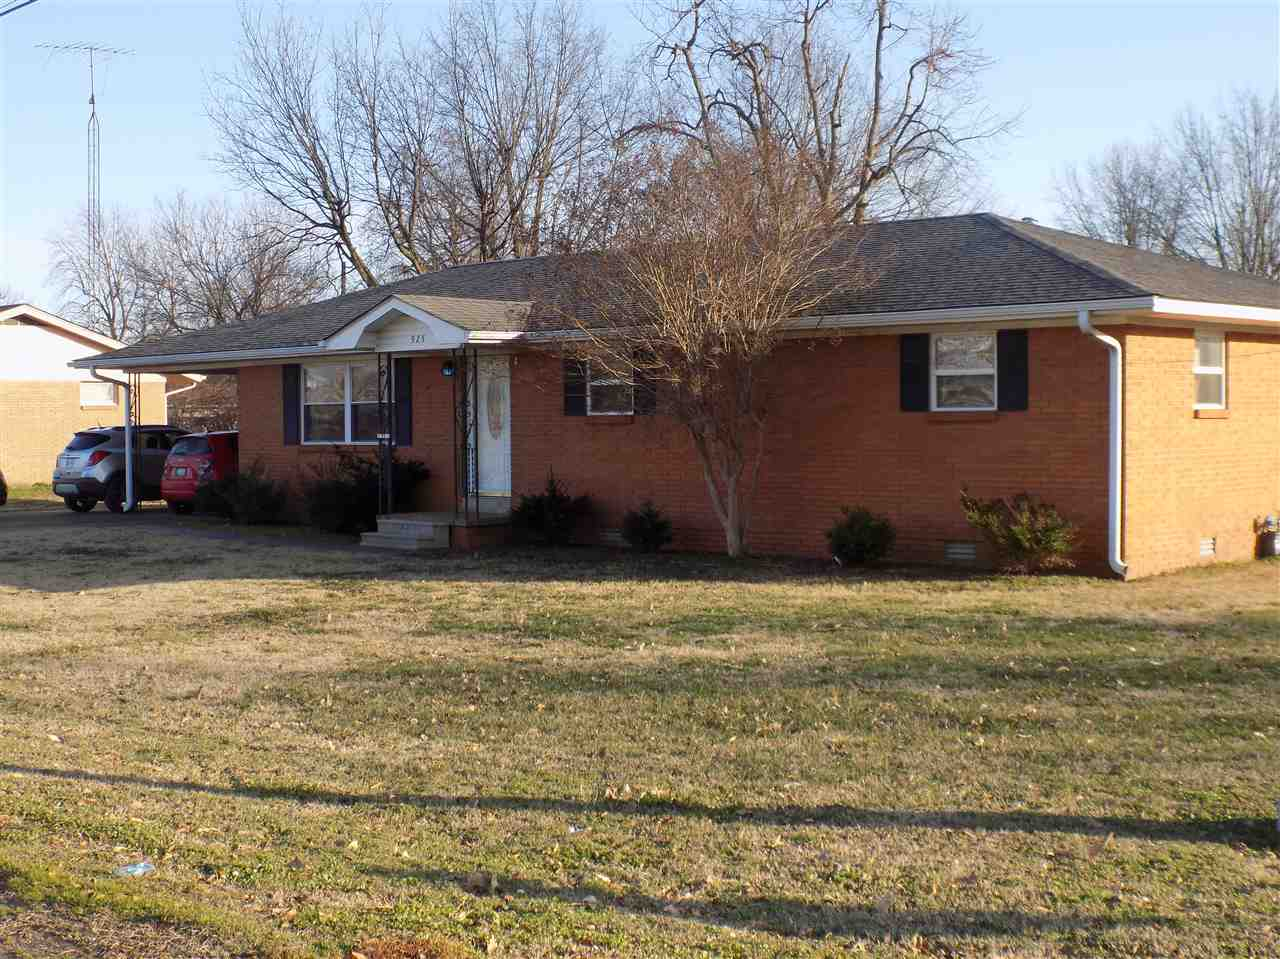 925 Foster Street,Tiptonville,Tennessee 38079-1610,3 Bedrooms Bedrooms,2 BathroomsBathrooms,Residential,925 Foster Street,186533